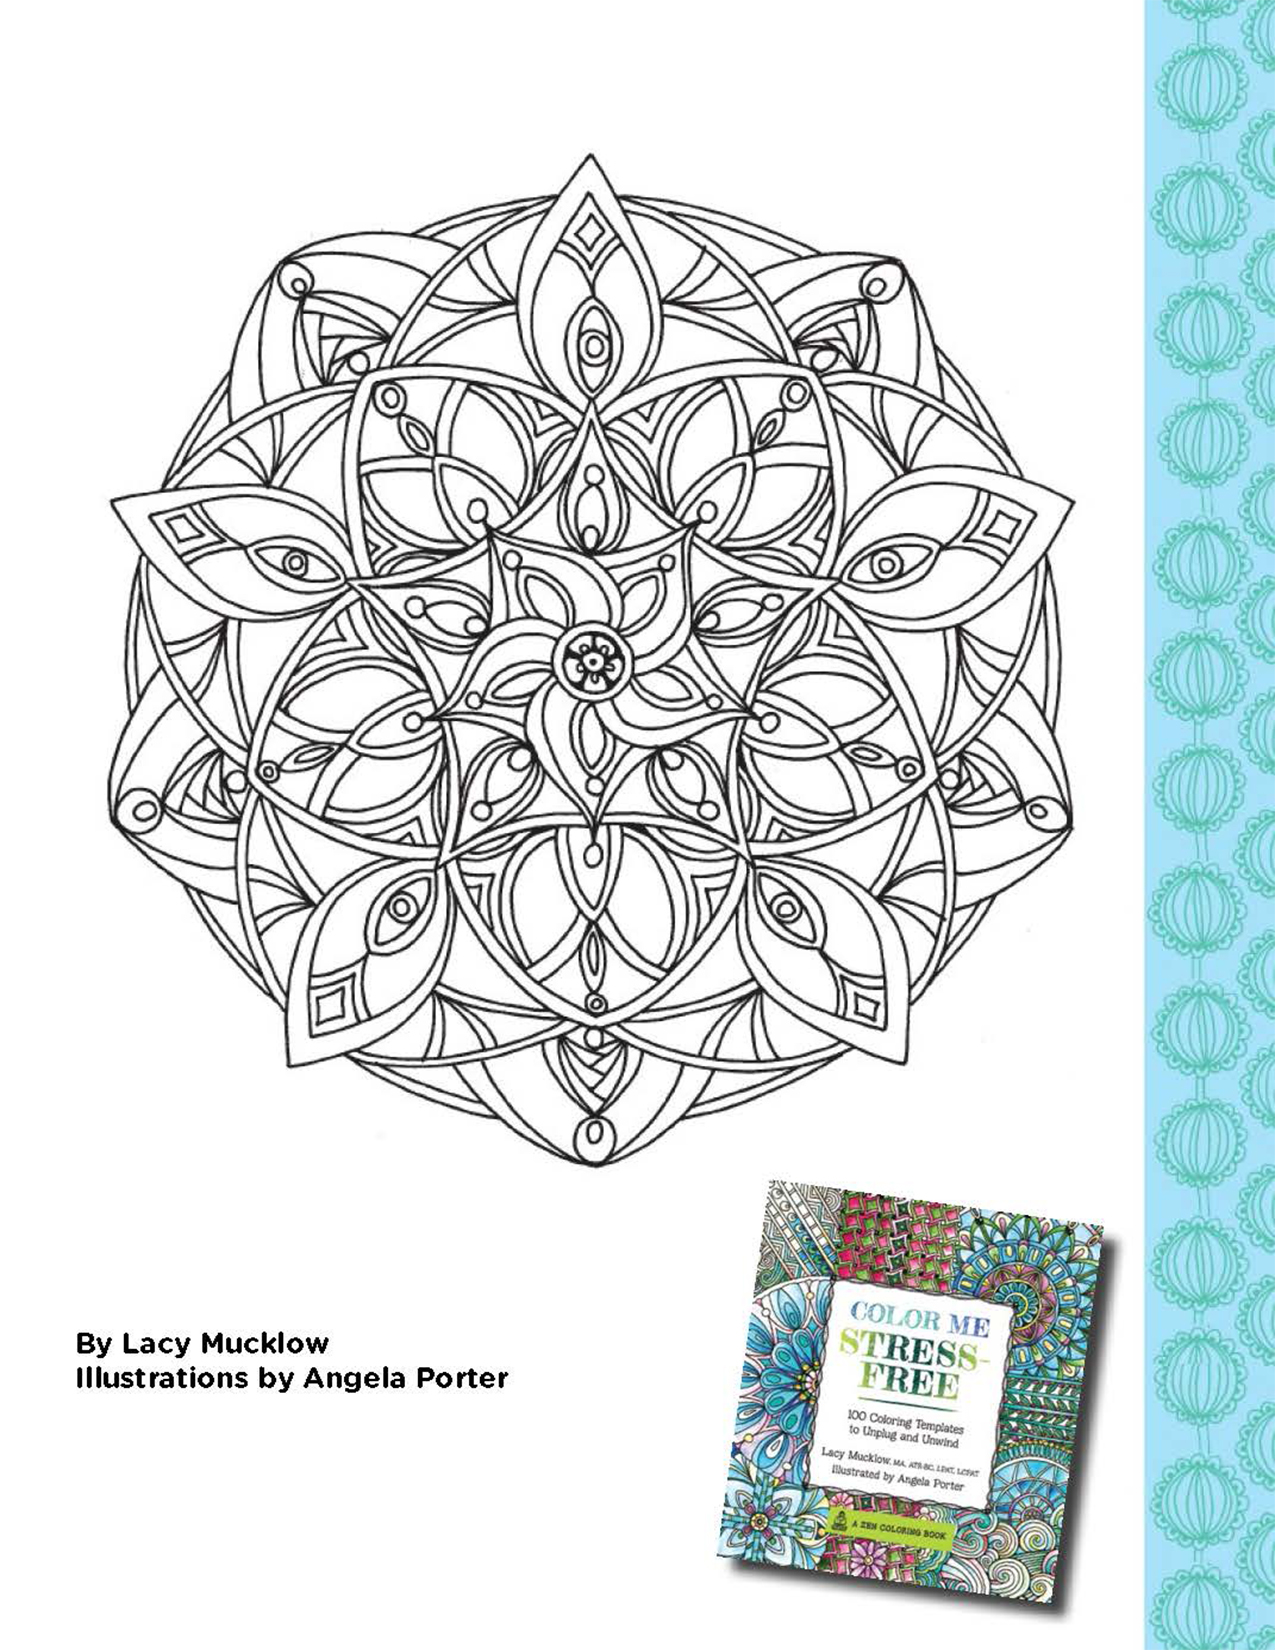 Stress free coloring images - Color Me Stress Free Coloring Book Printable